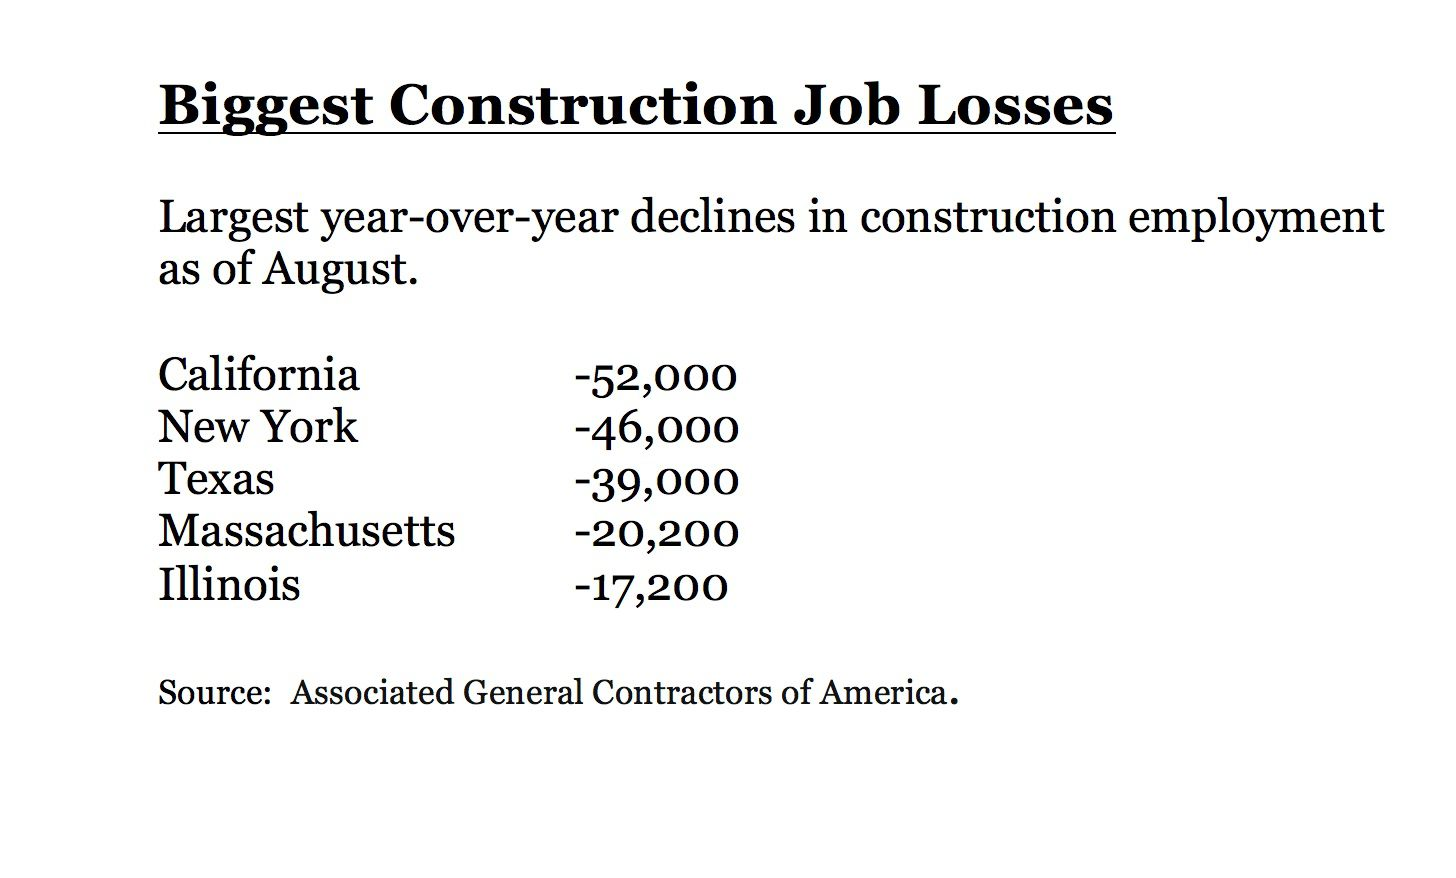 Texas has lost 39,000 construction jobs in the last year.